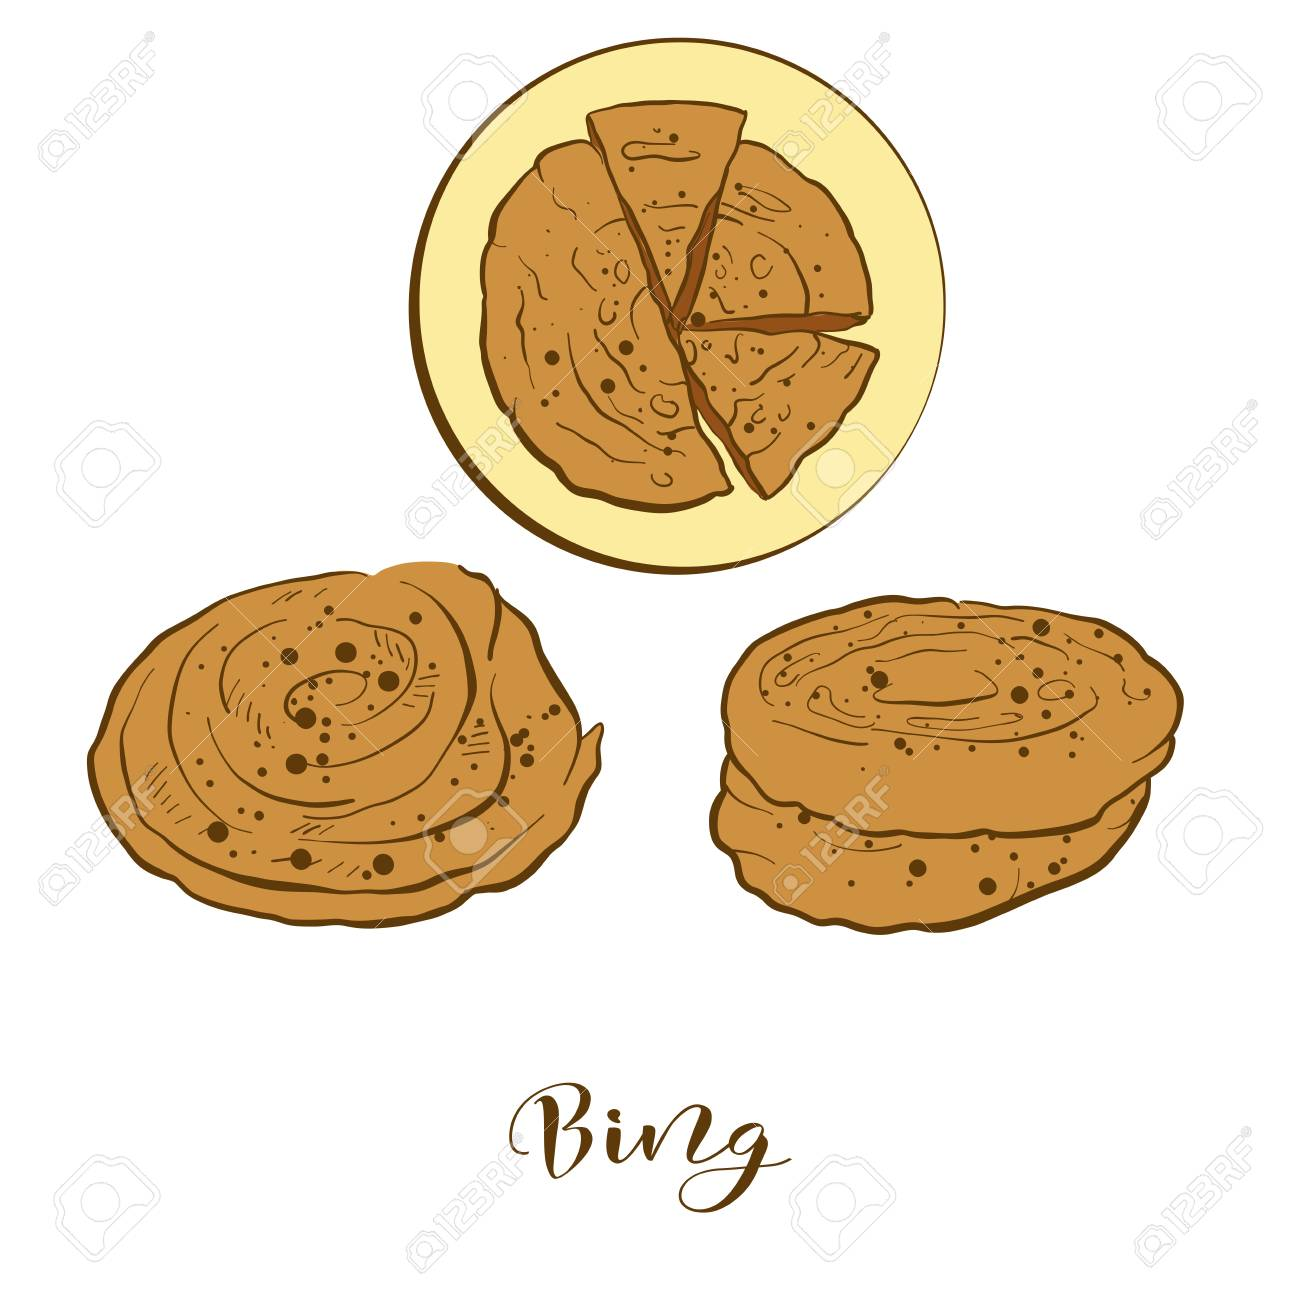 hight resolution of colored sketches of bing bread vector drawing of flatbread food usually known in china